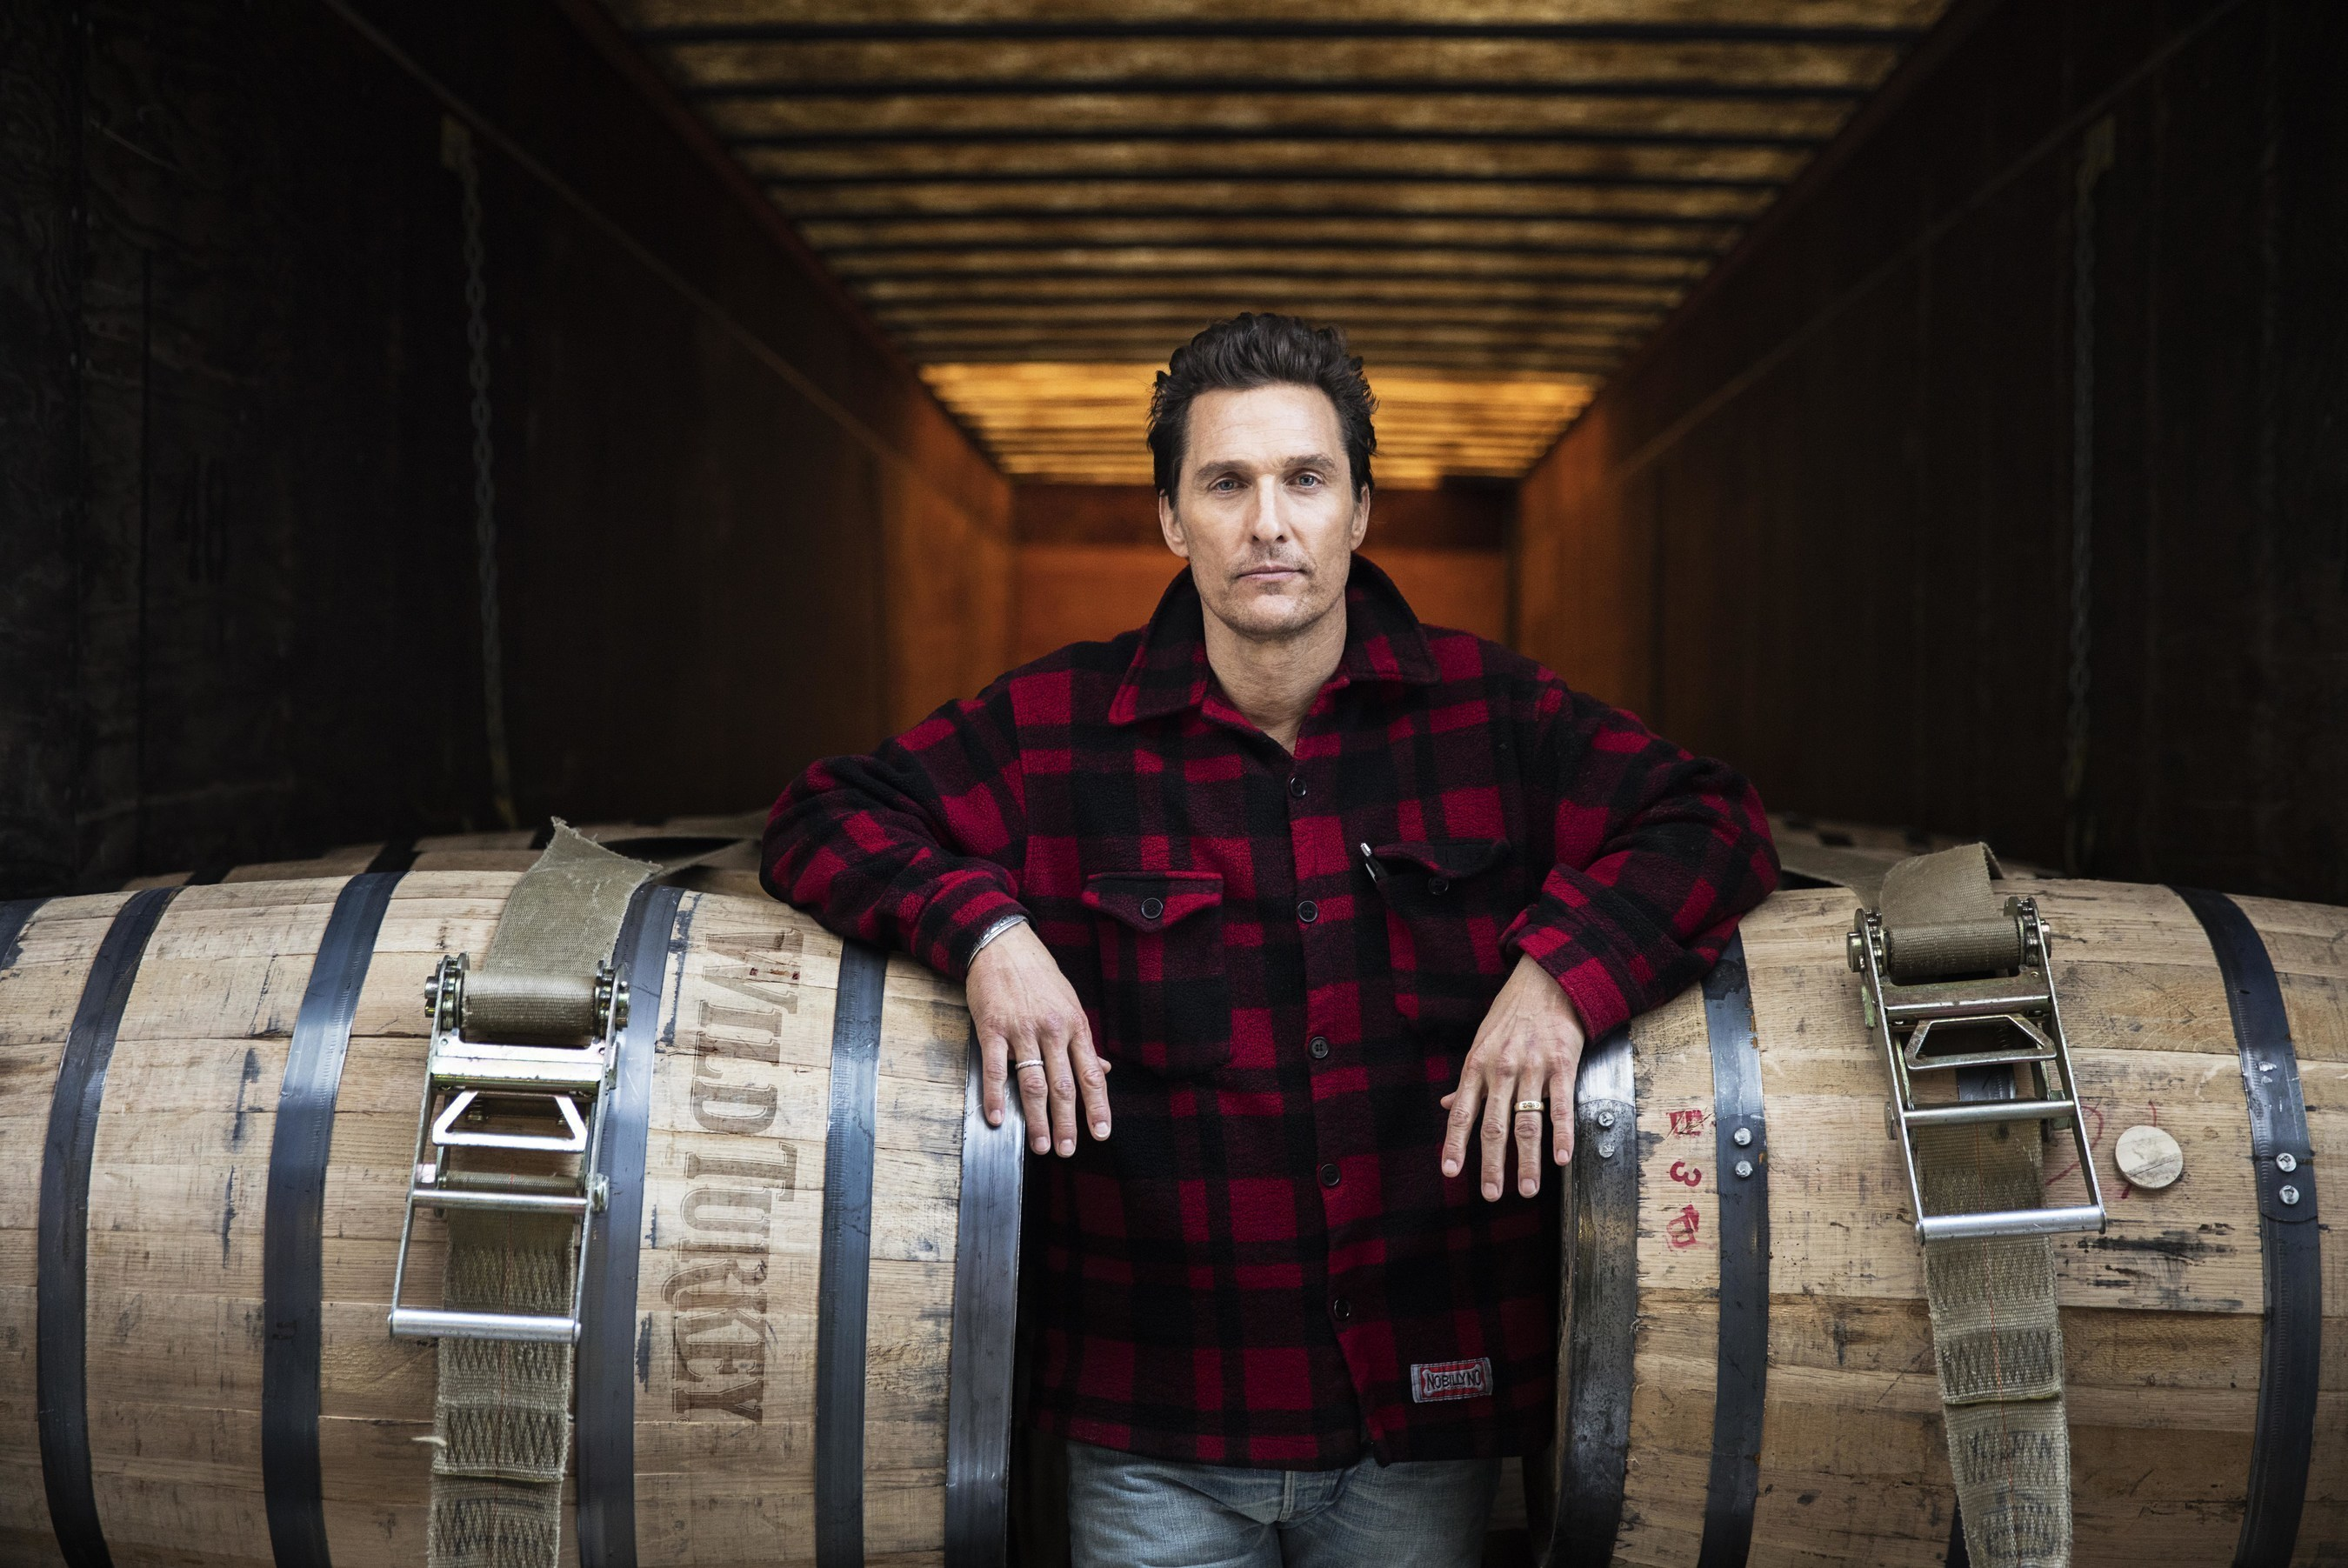 Matthew McConaughey - the new Creative Director for Wild Turkey - at the lauded bourbon distillery in Lawrenceburg, KY. Photo courtesy of Wild Turkey Bourbon.